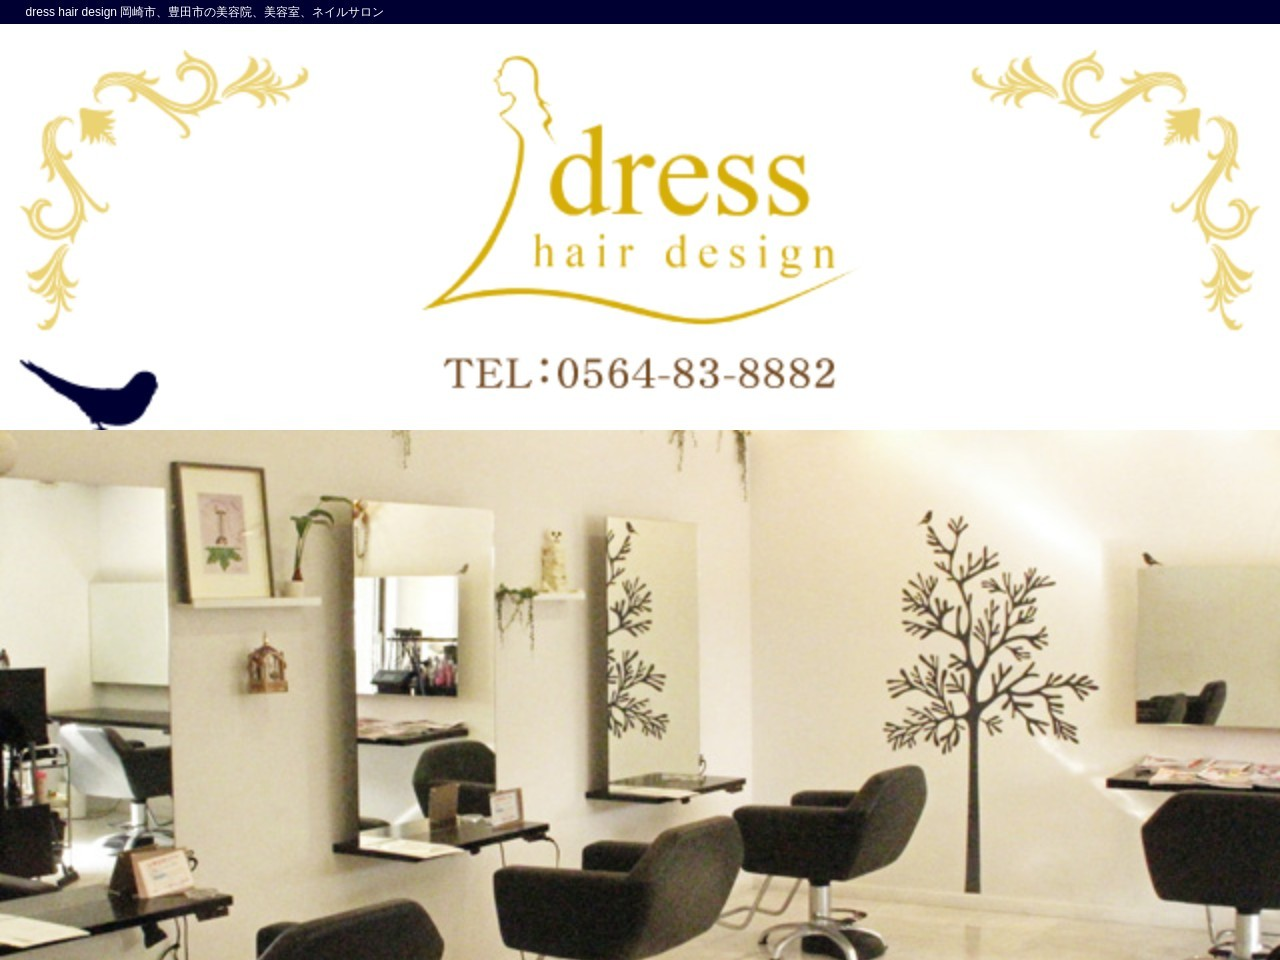 dress hair design